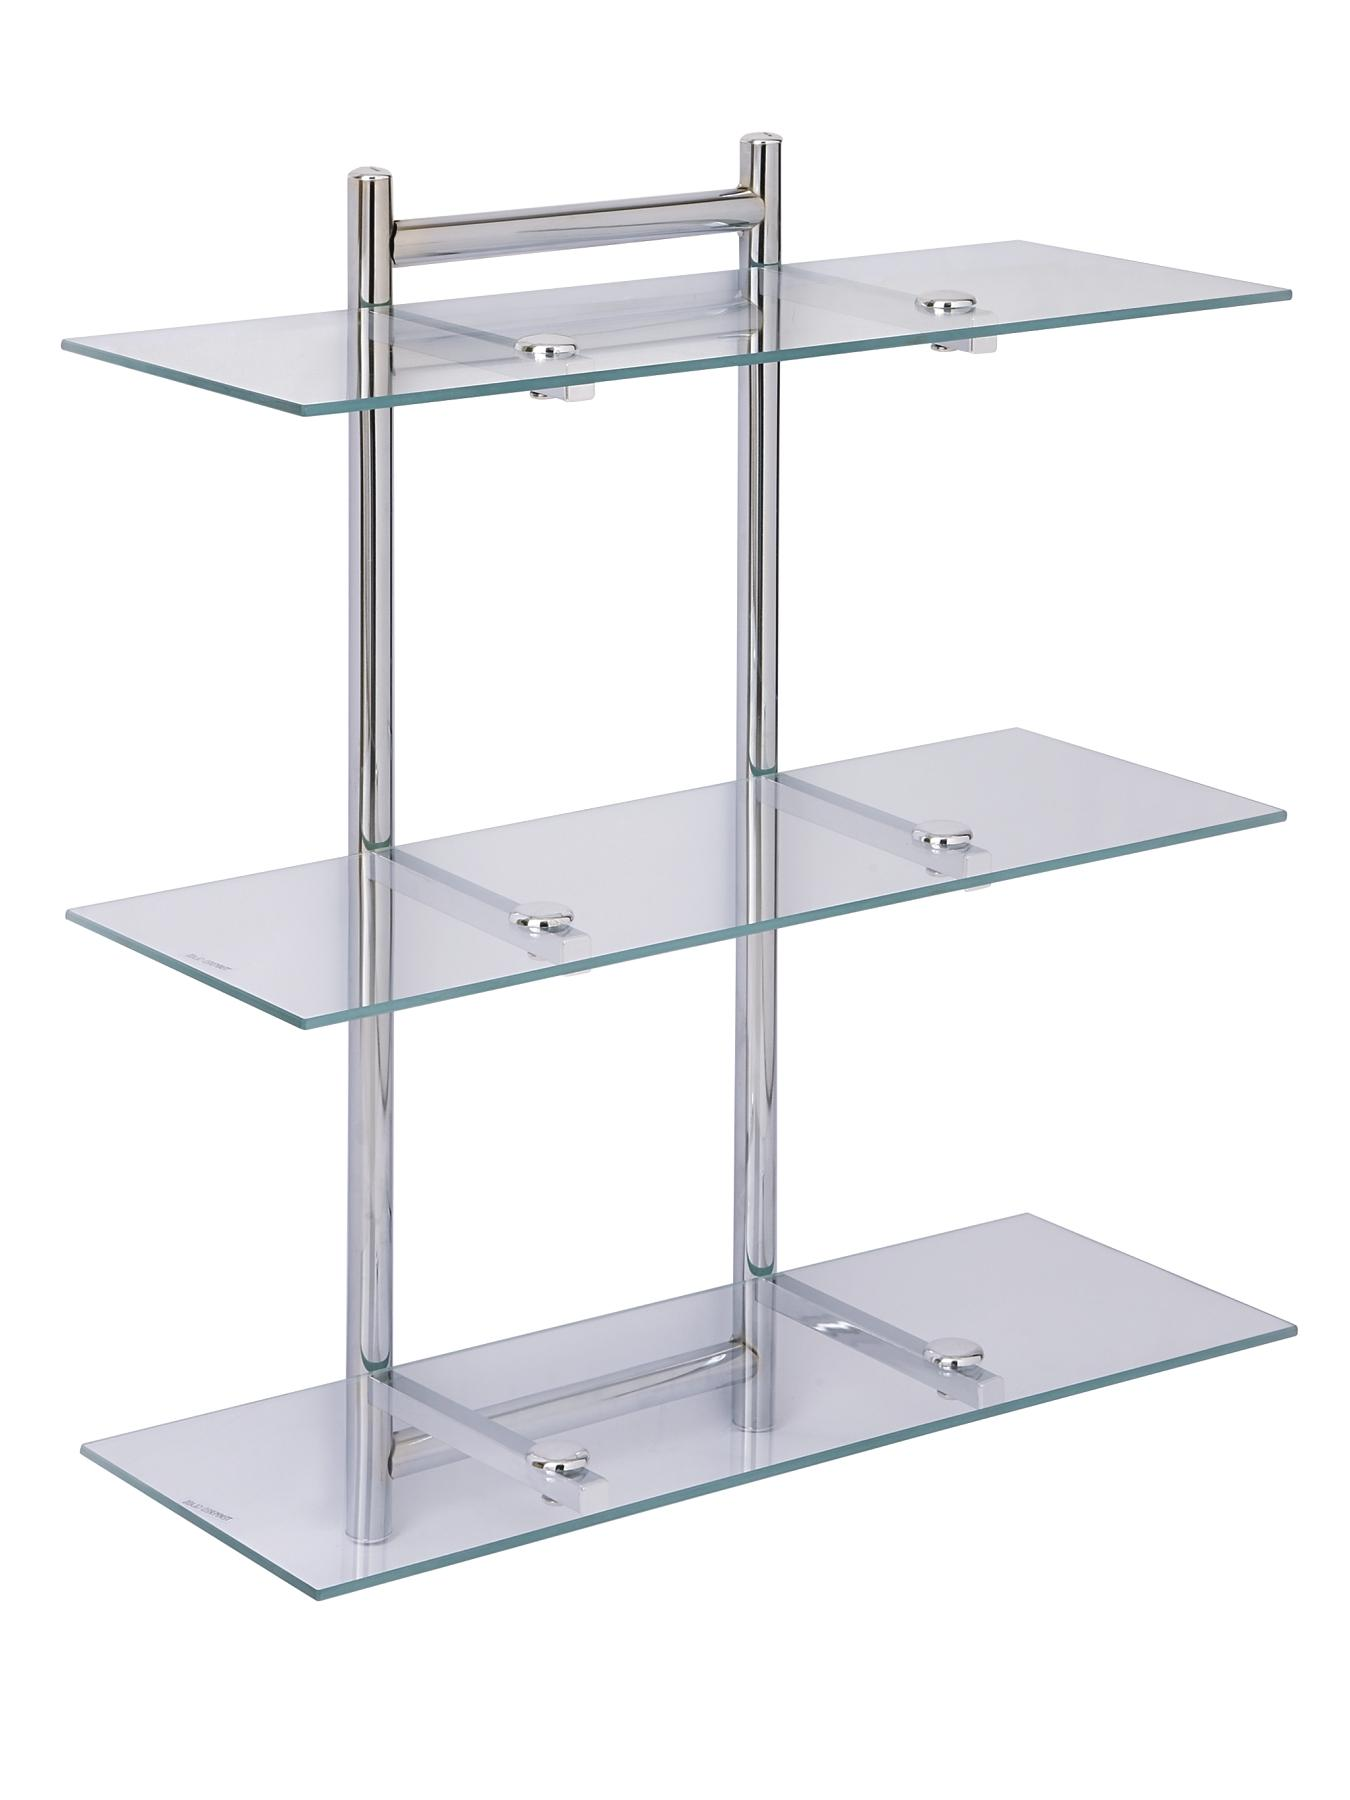 Aquarius 3 Tier Glass Bathroom Shelving Unit